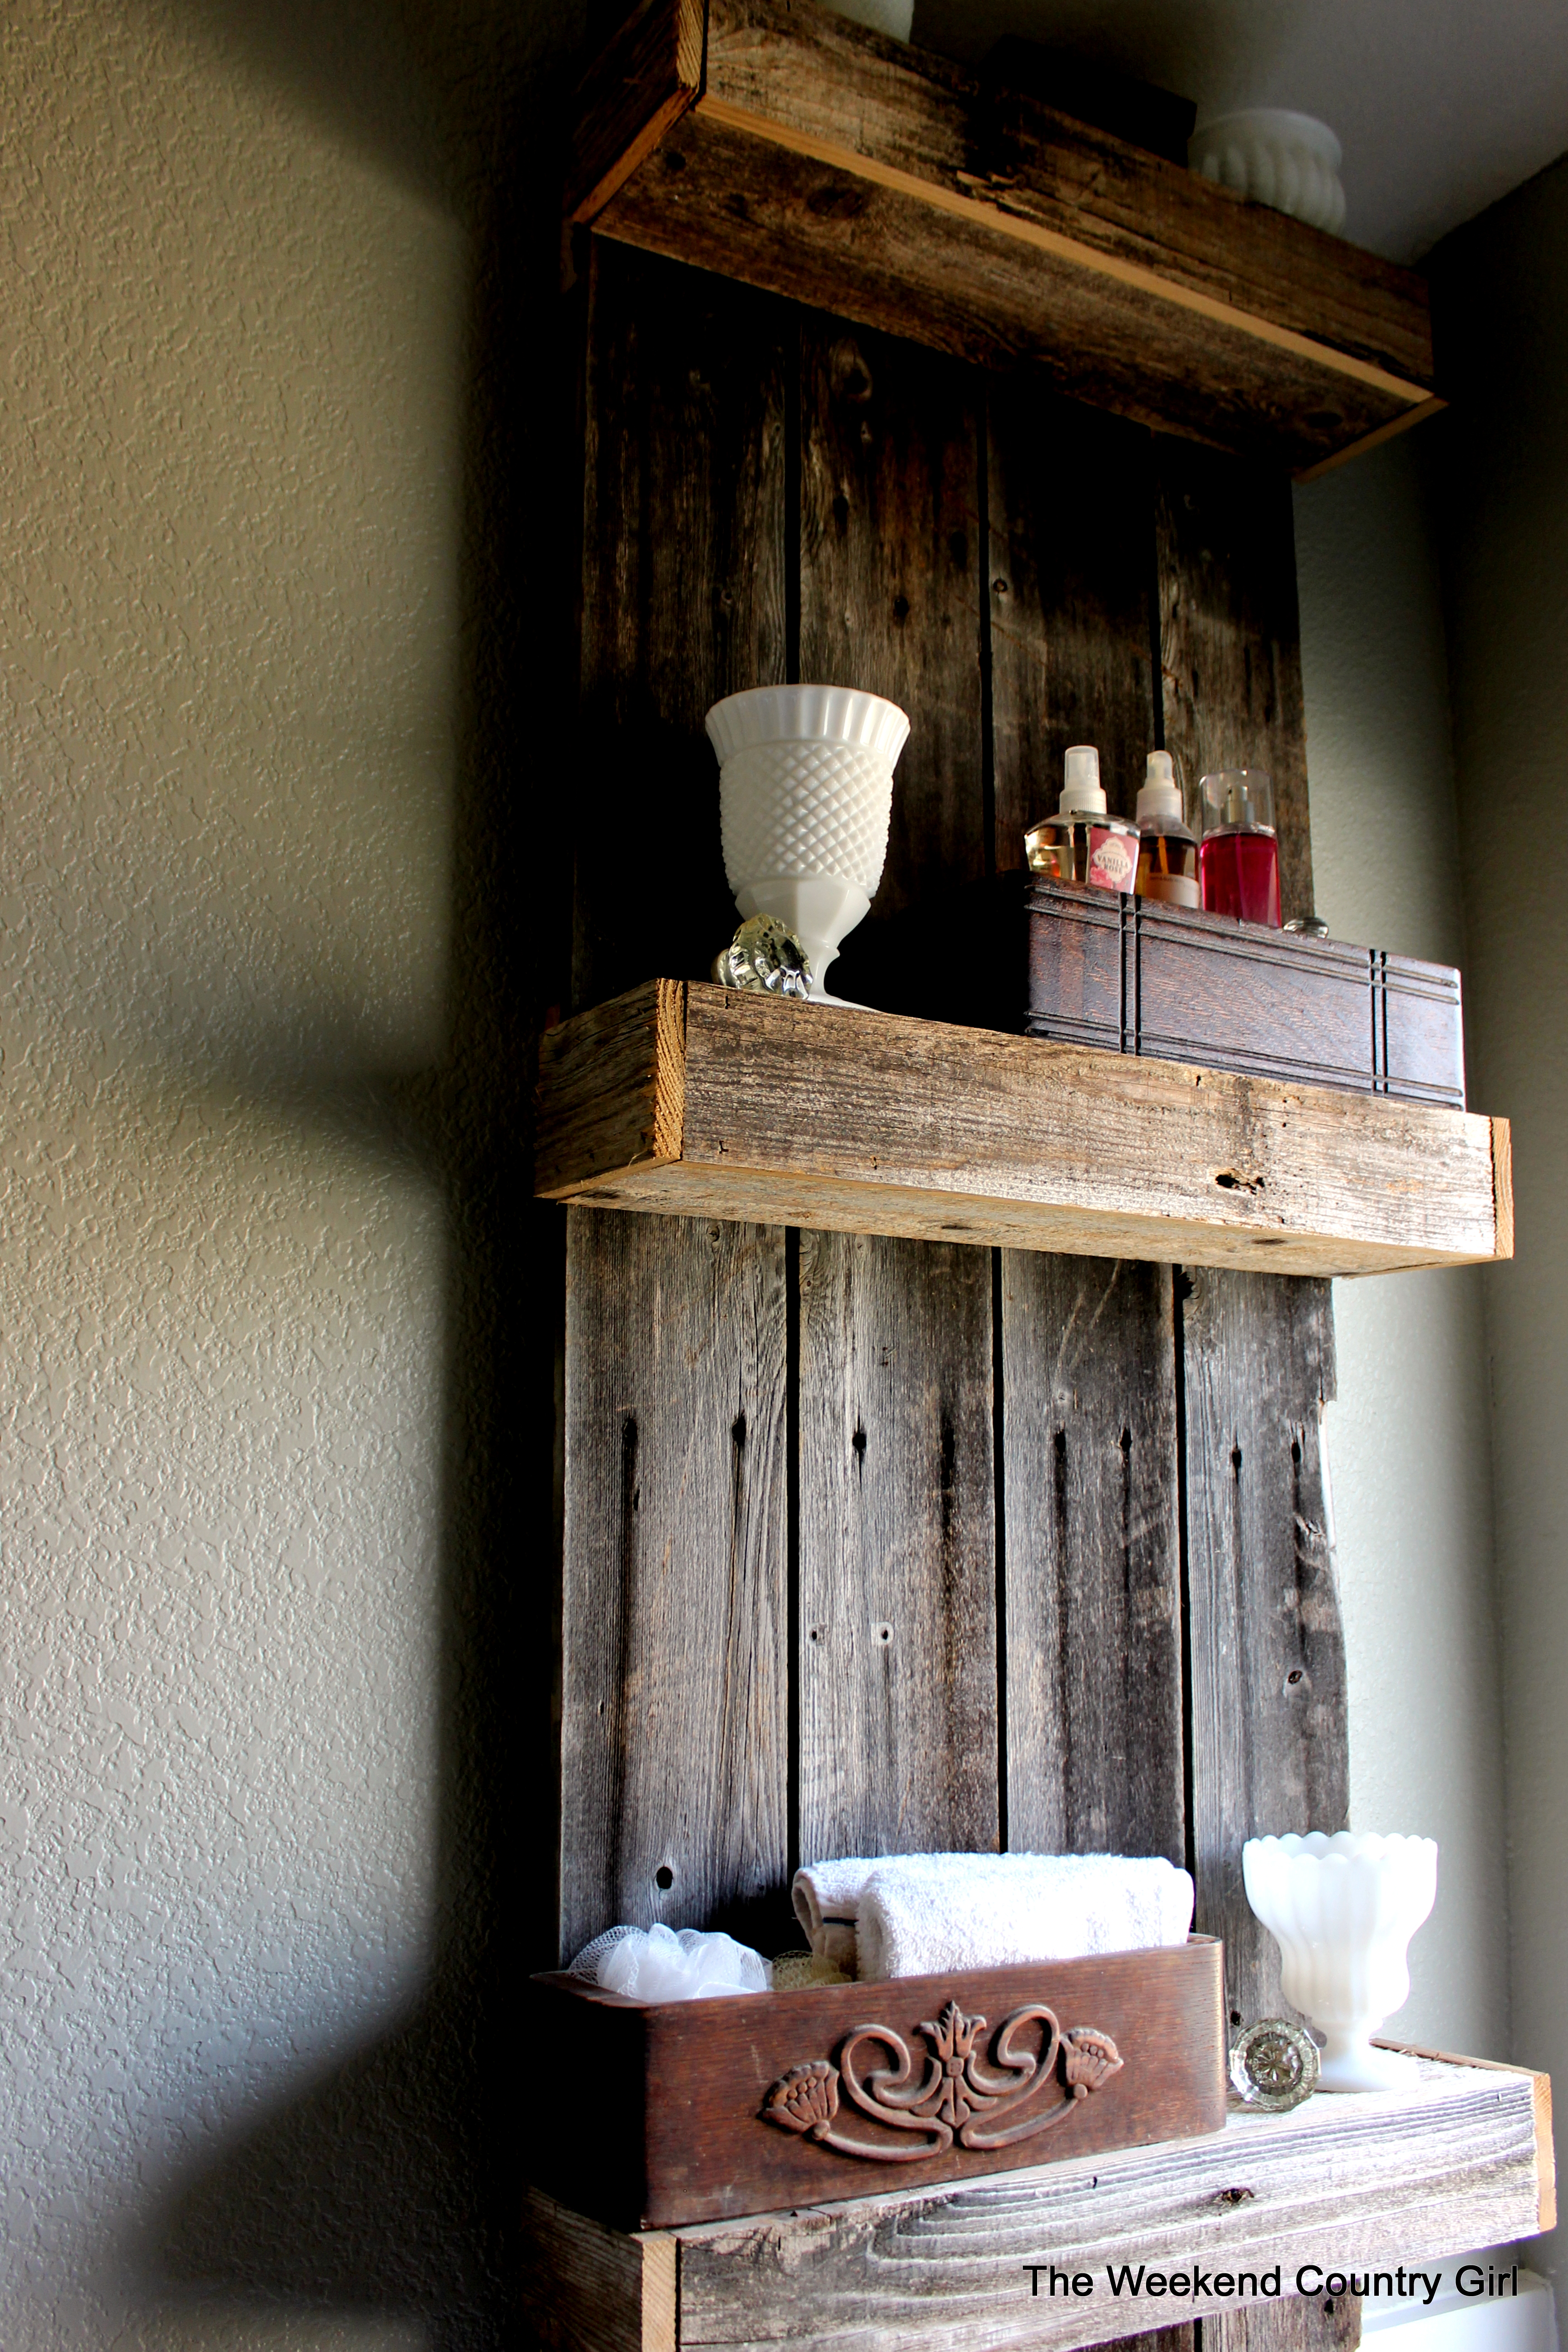 Bathroom Makeover With Rustic Shelf By The Weekend Country Girl Featured On Remodelaholic